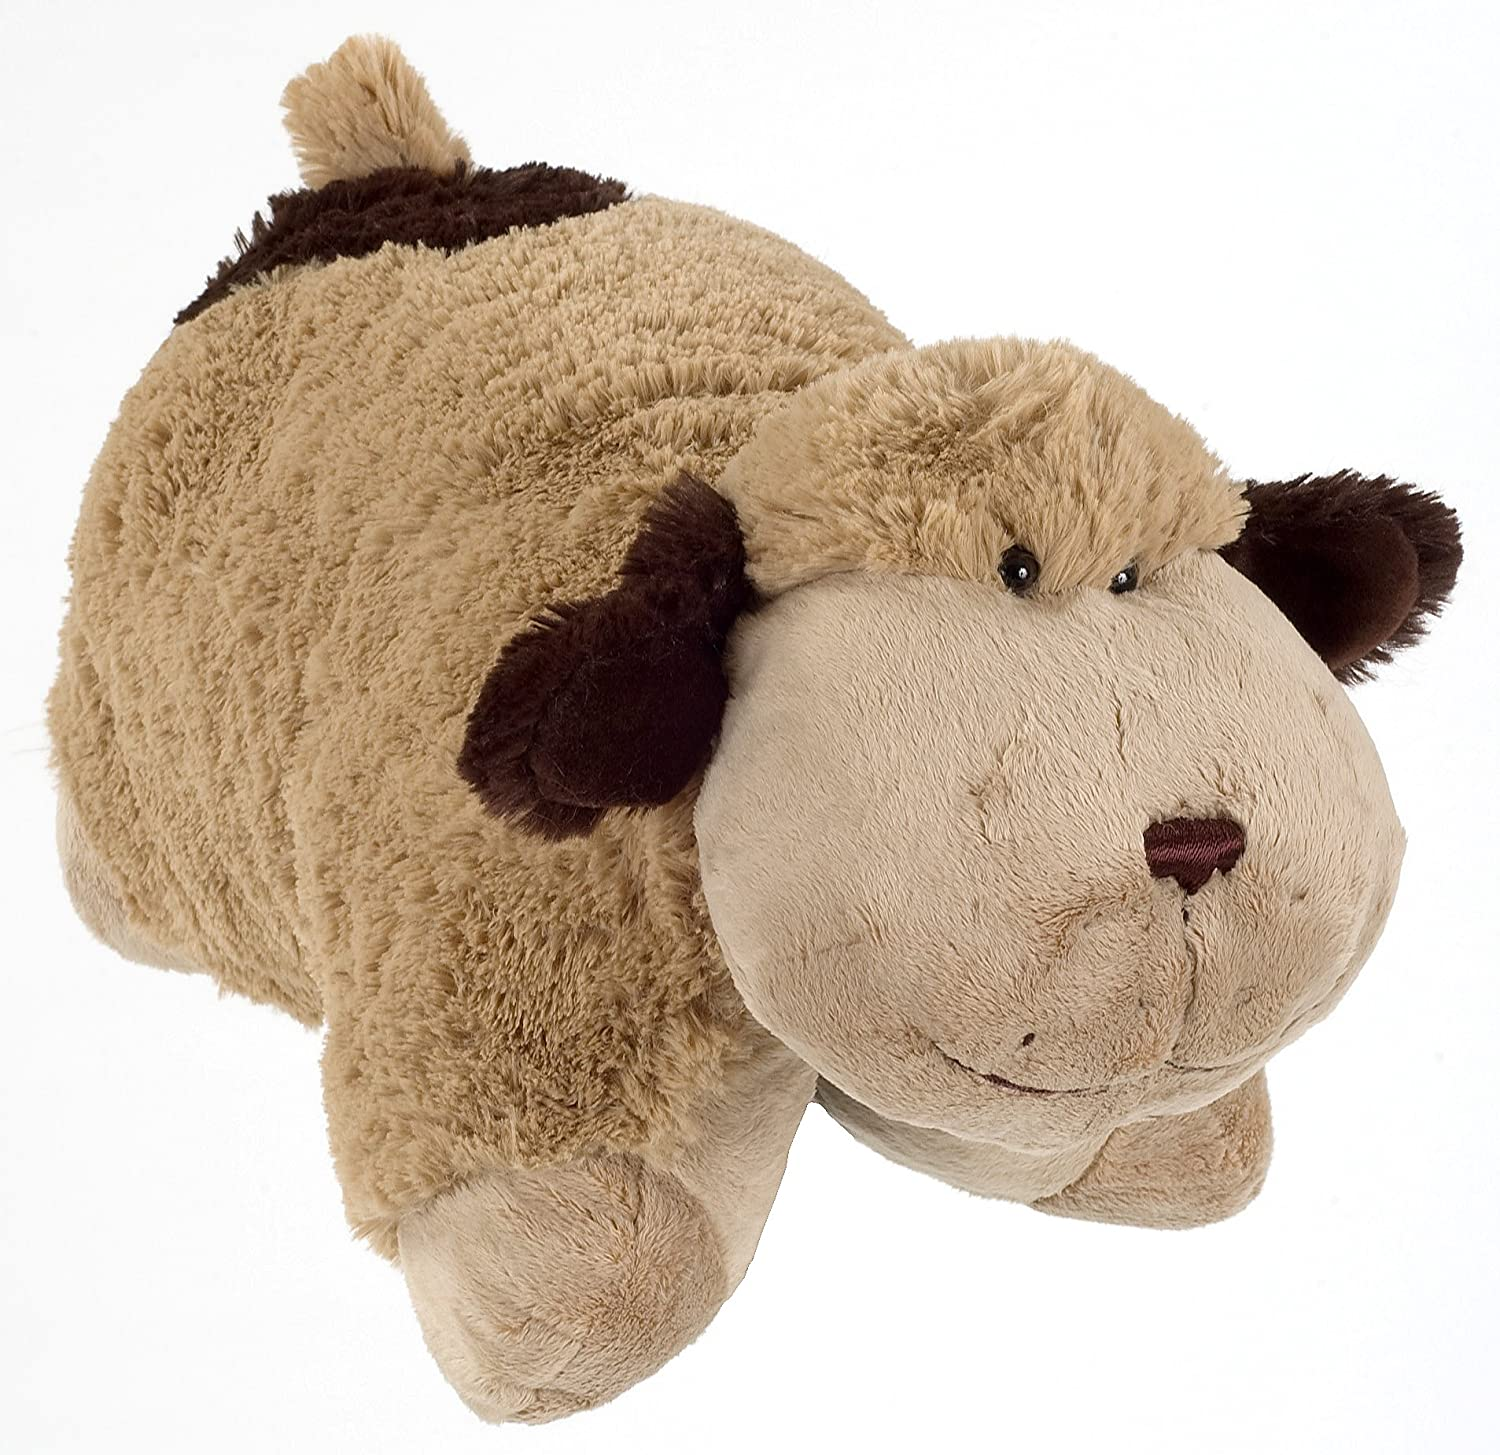 Amazon Signature Snuggly Puppy Pillow Pet Stuffed